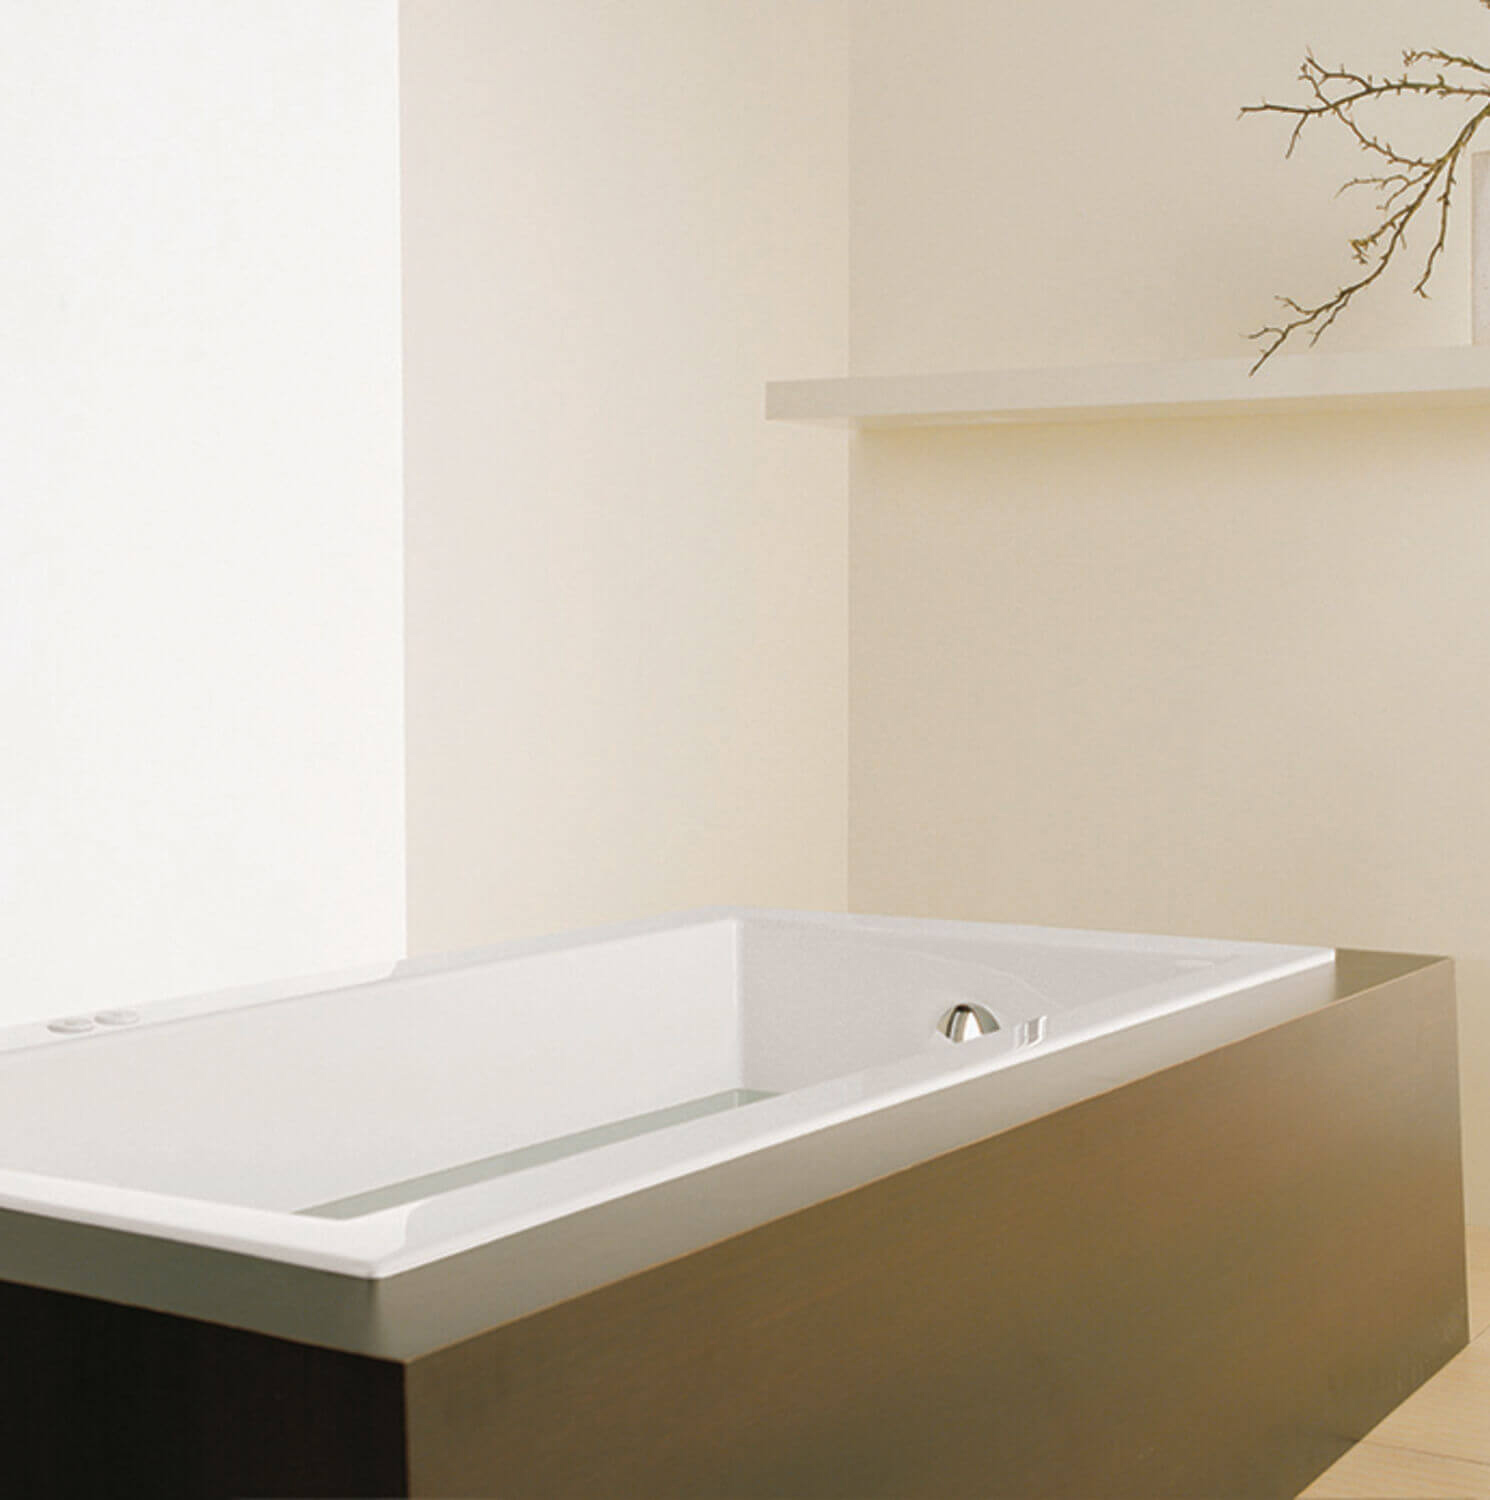 Bainultra Origami® 6636 Original Series alcove drop-in air jet bathtub for your modern bathroom